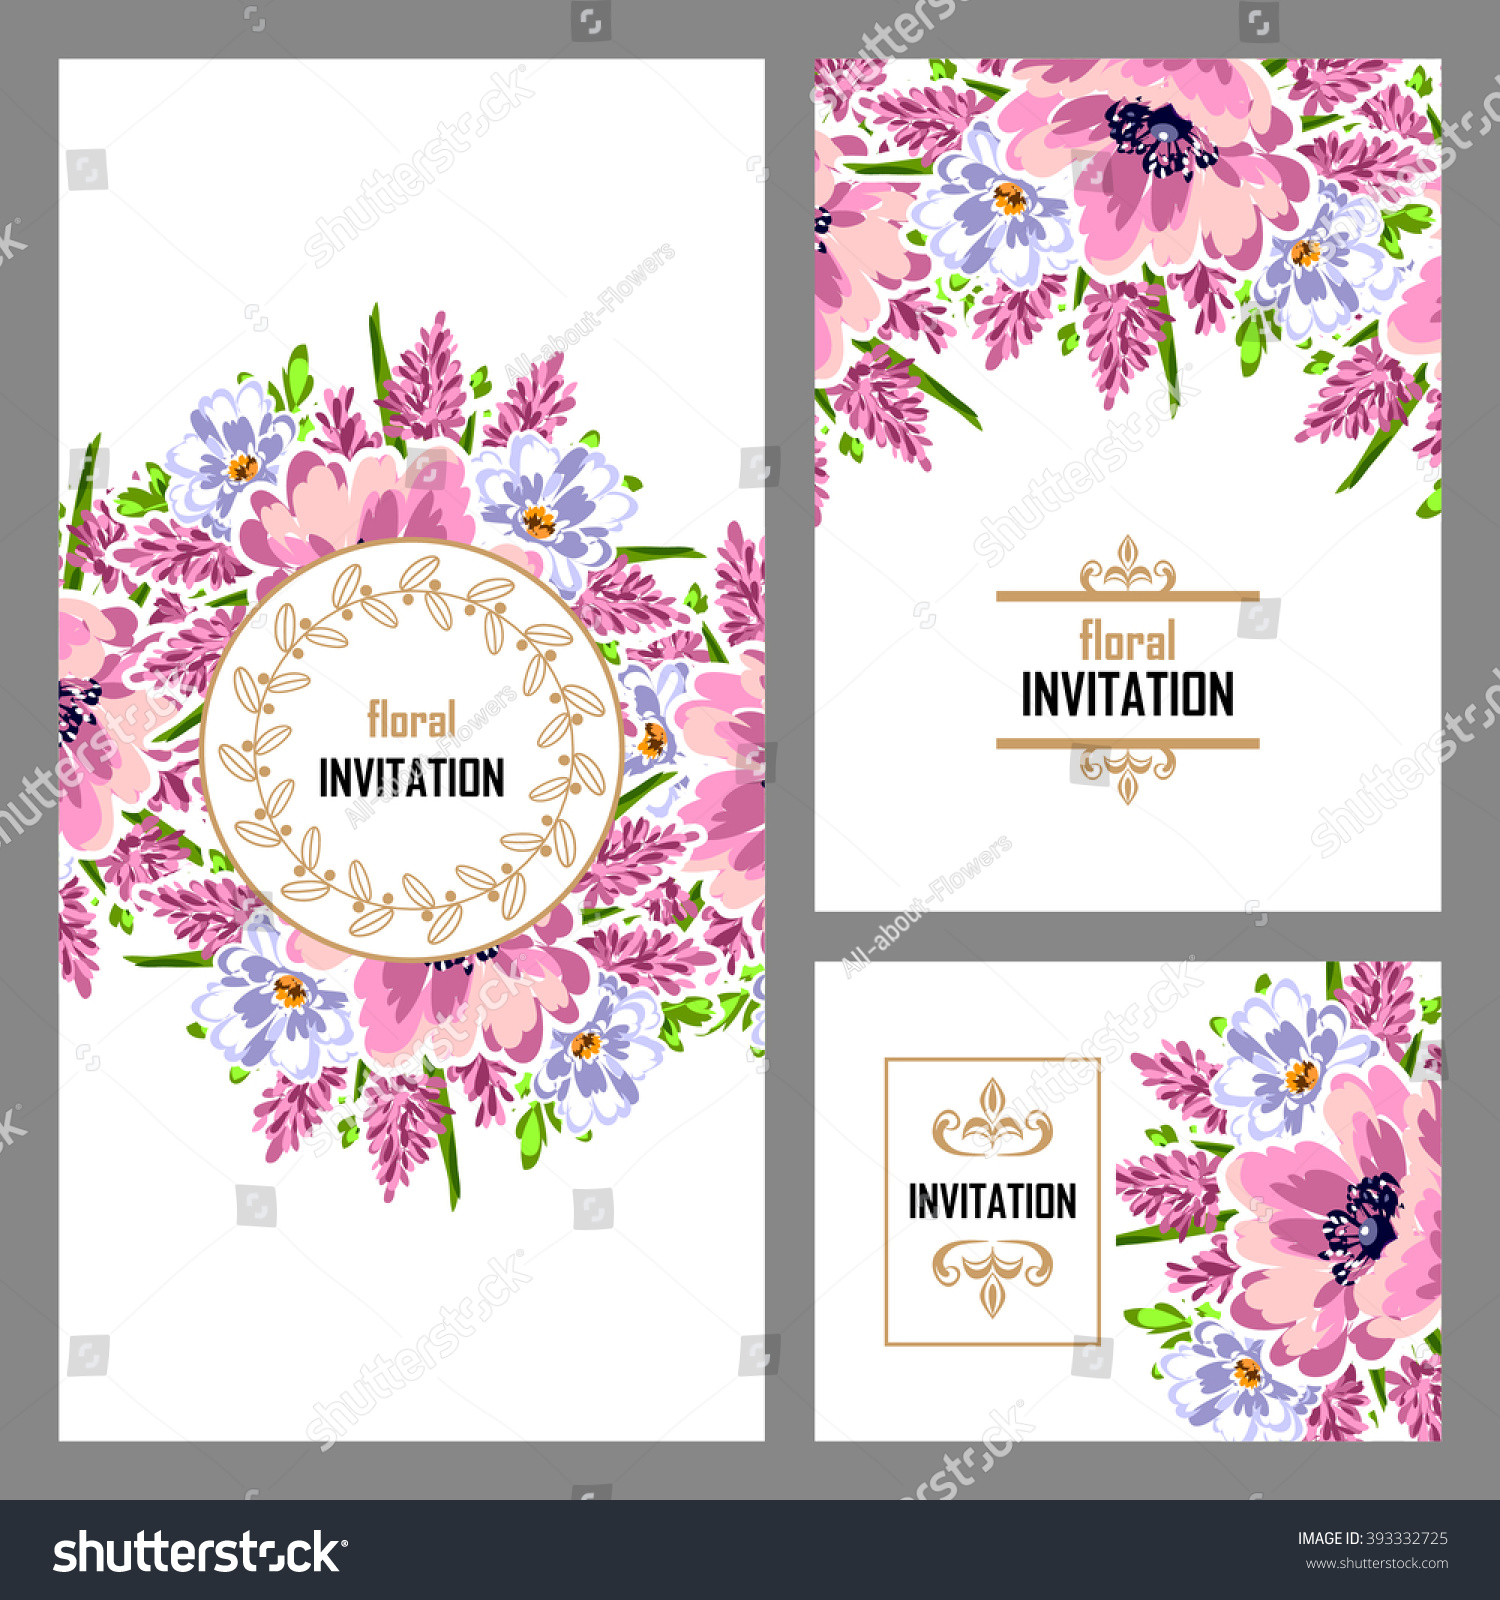 Vintage Delicate Invitation Flowers Wedding Marriage Stock Vector